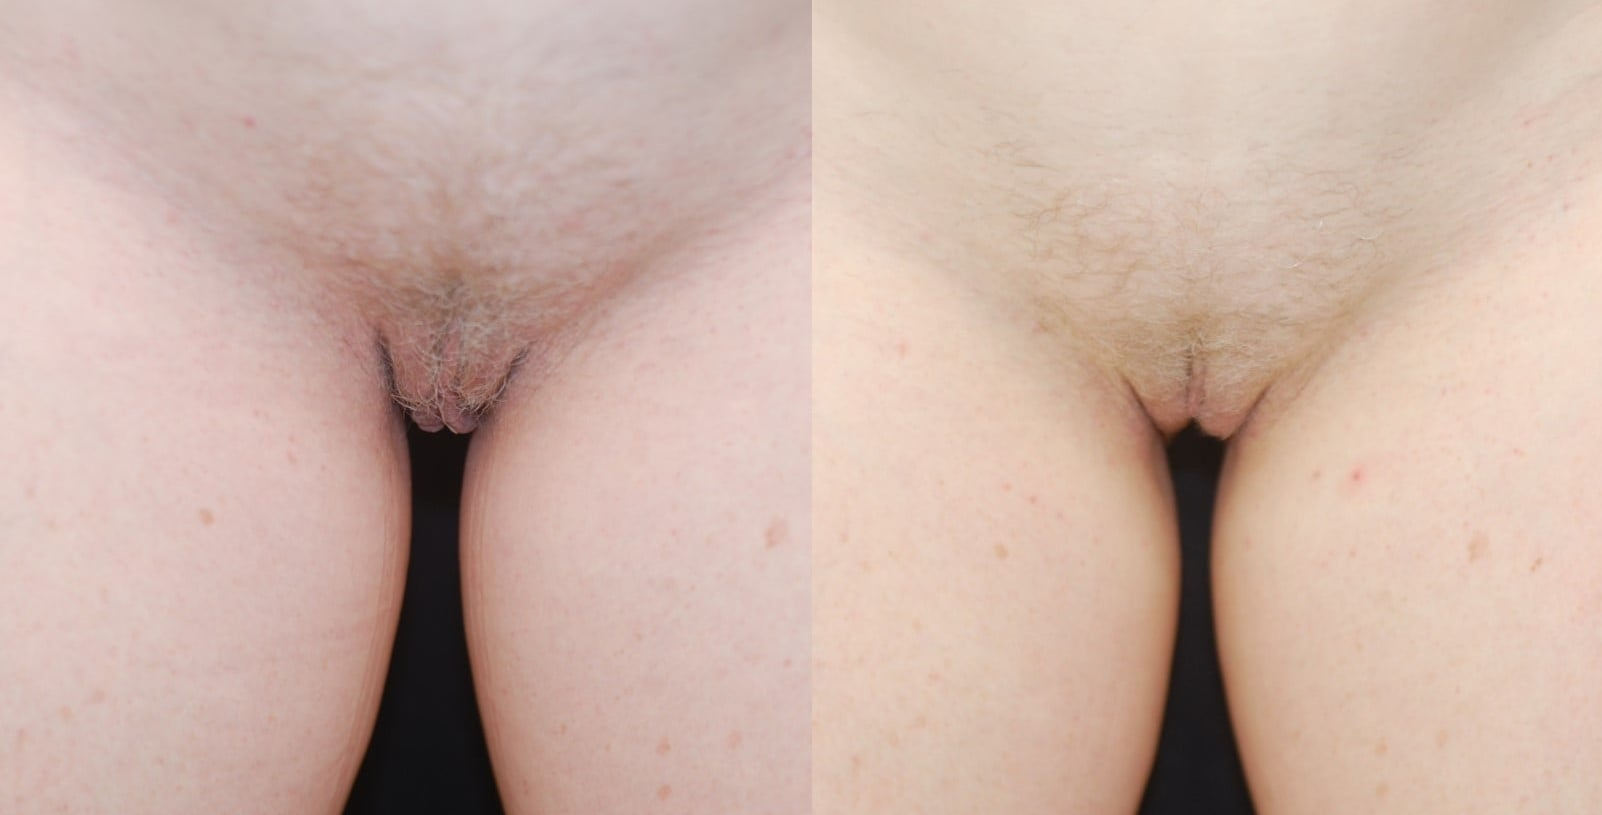 Actual patient of Dr. Devgan, before and 3 months after labiaplasty. This is a middle-aged woman with labia minora excess and perineal excess, corrected with a combination of modified wedge technique and direct excision of perineal tissue.